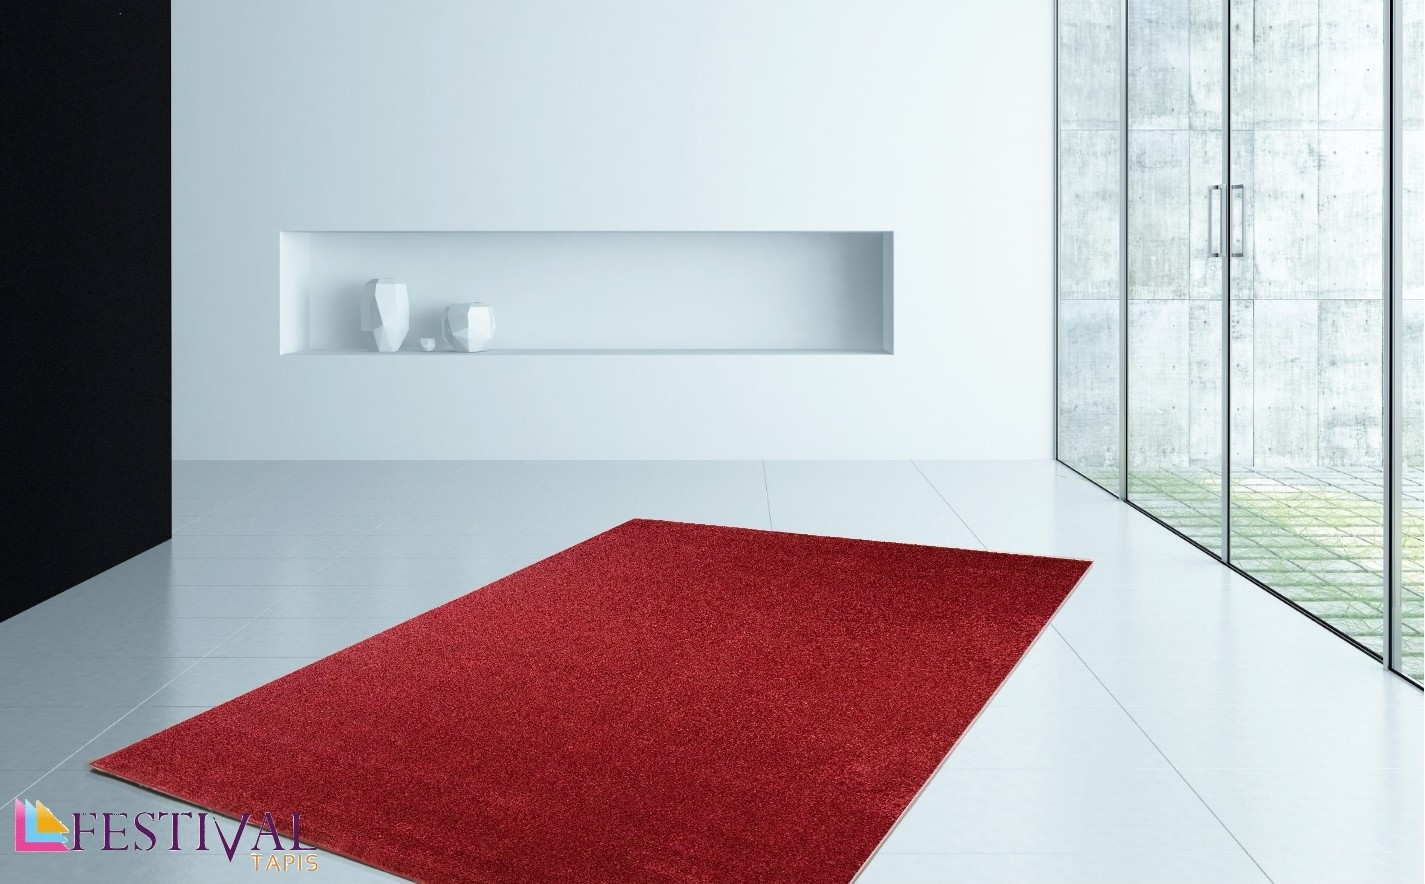 tapis salon rouge tapis de salon moderne tapis salon gris tapis de salon - Tapis De Salon Rouge